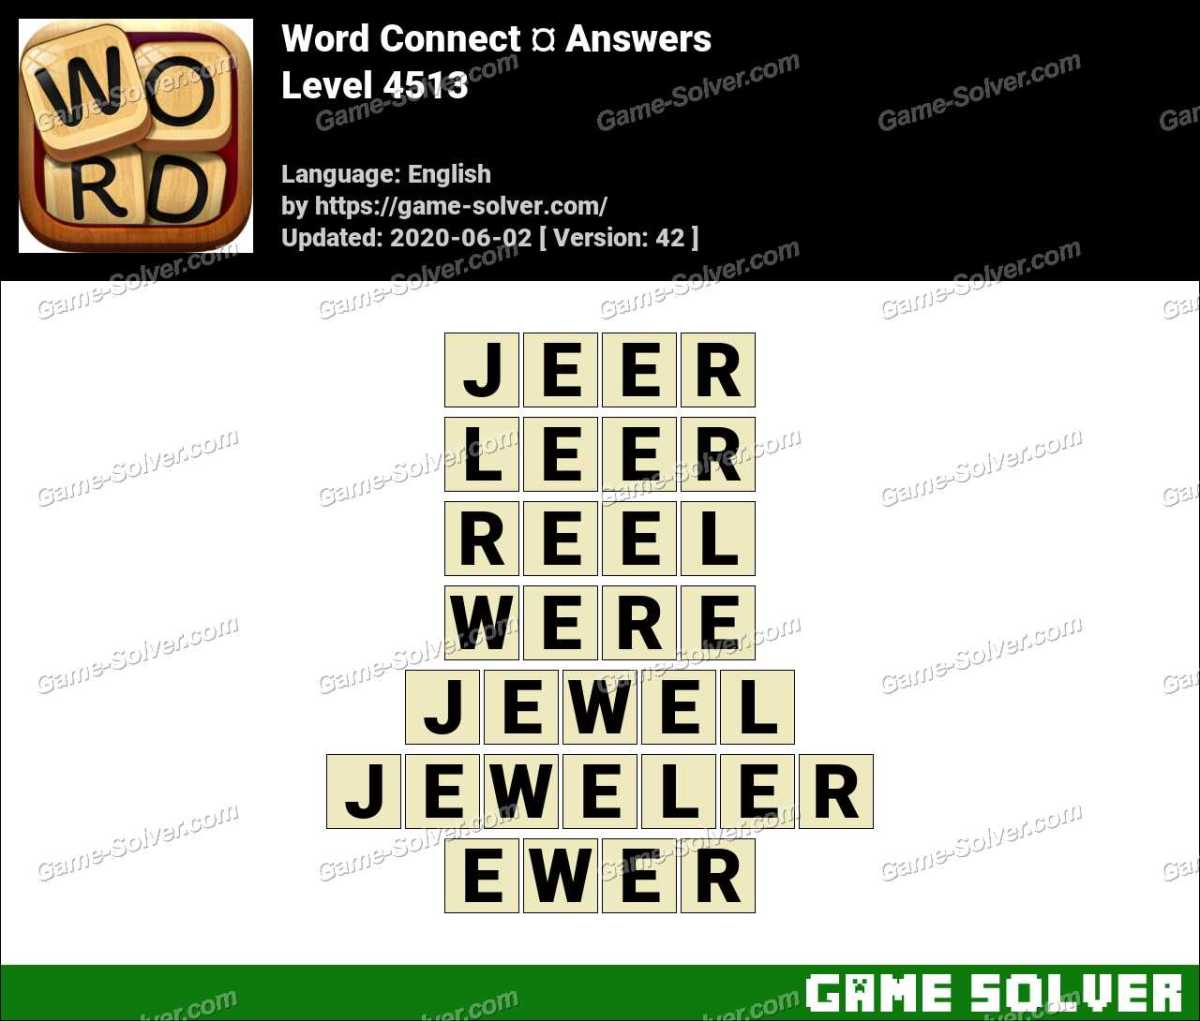 Word Connect Level 4513 Answers